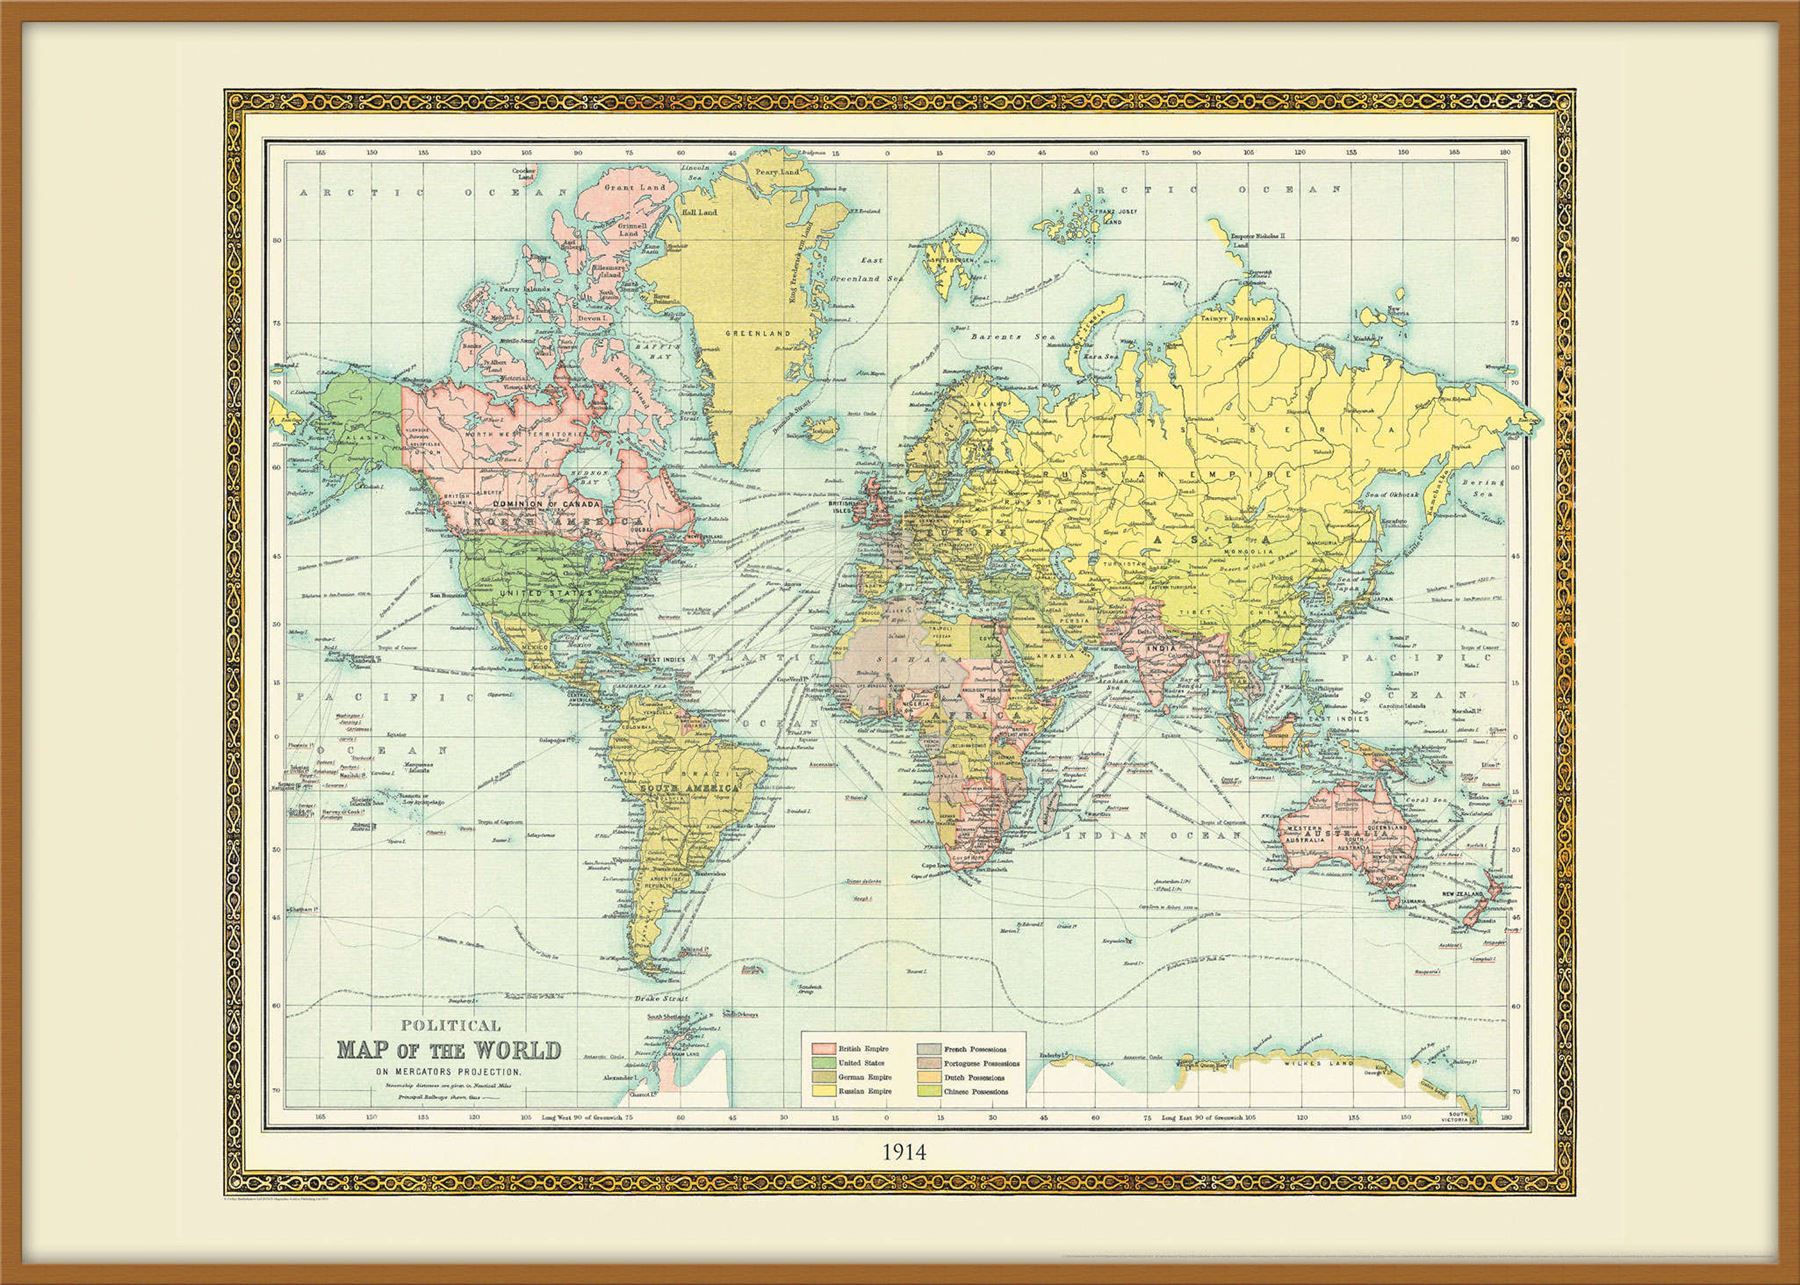 Vintage bartholomew political world map 1914 poster with size vintage bartholomew political world map 1914 poster with gumiabroncs Image collections